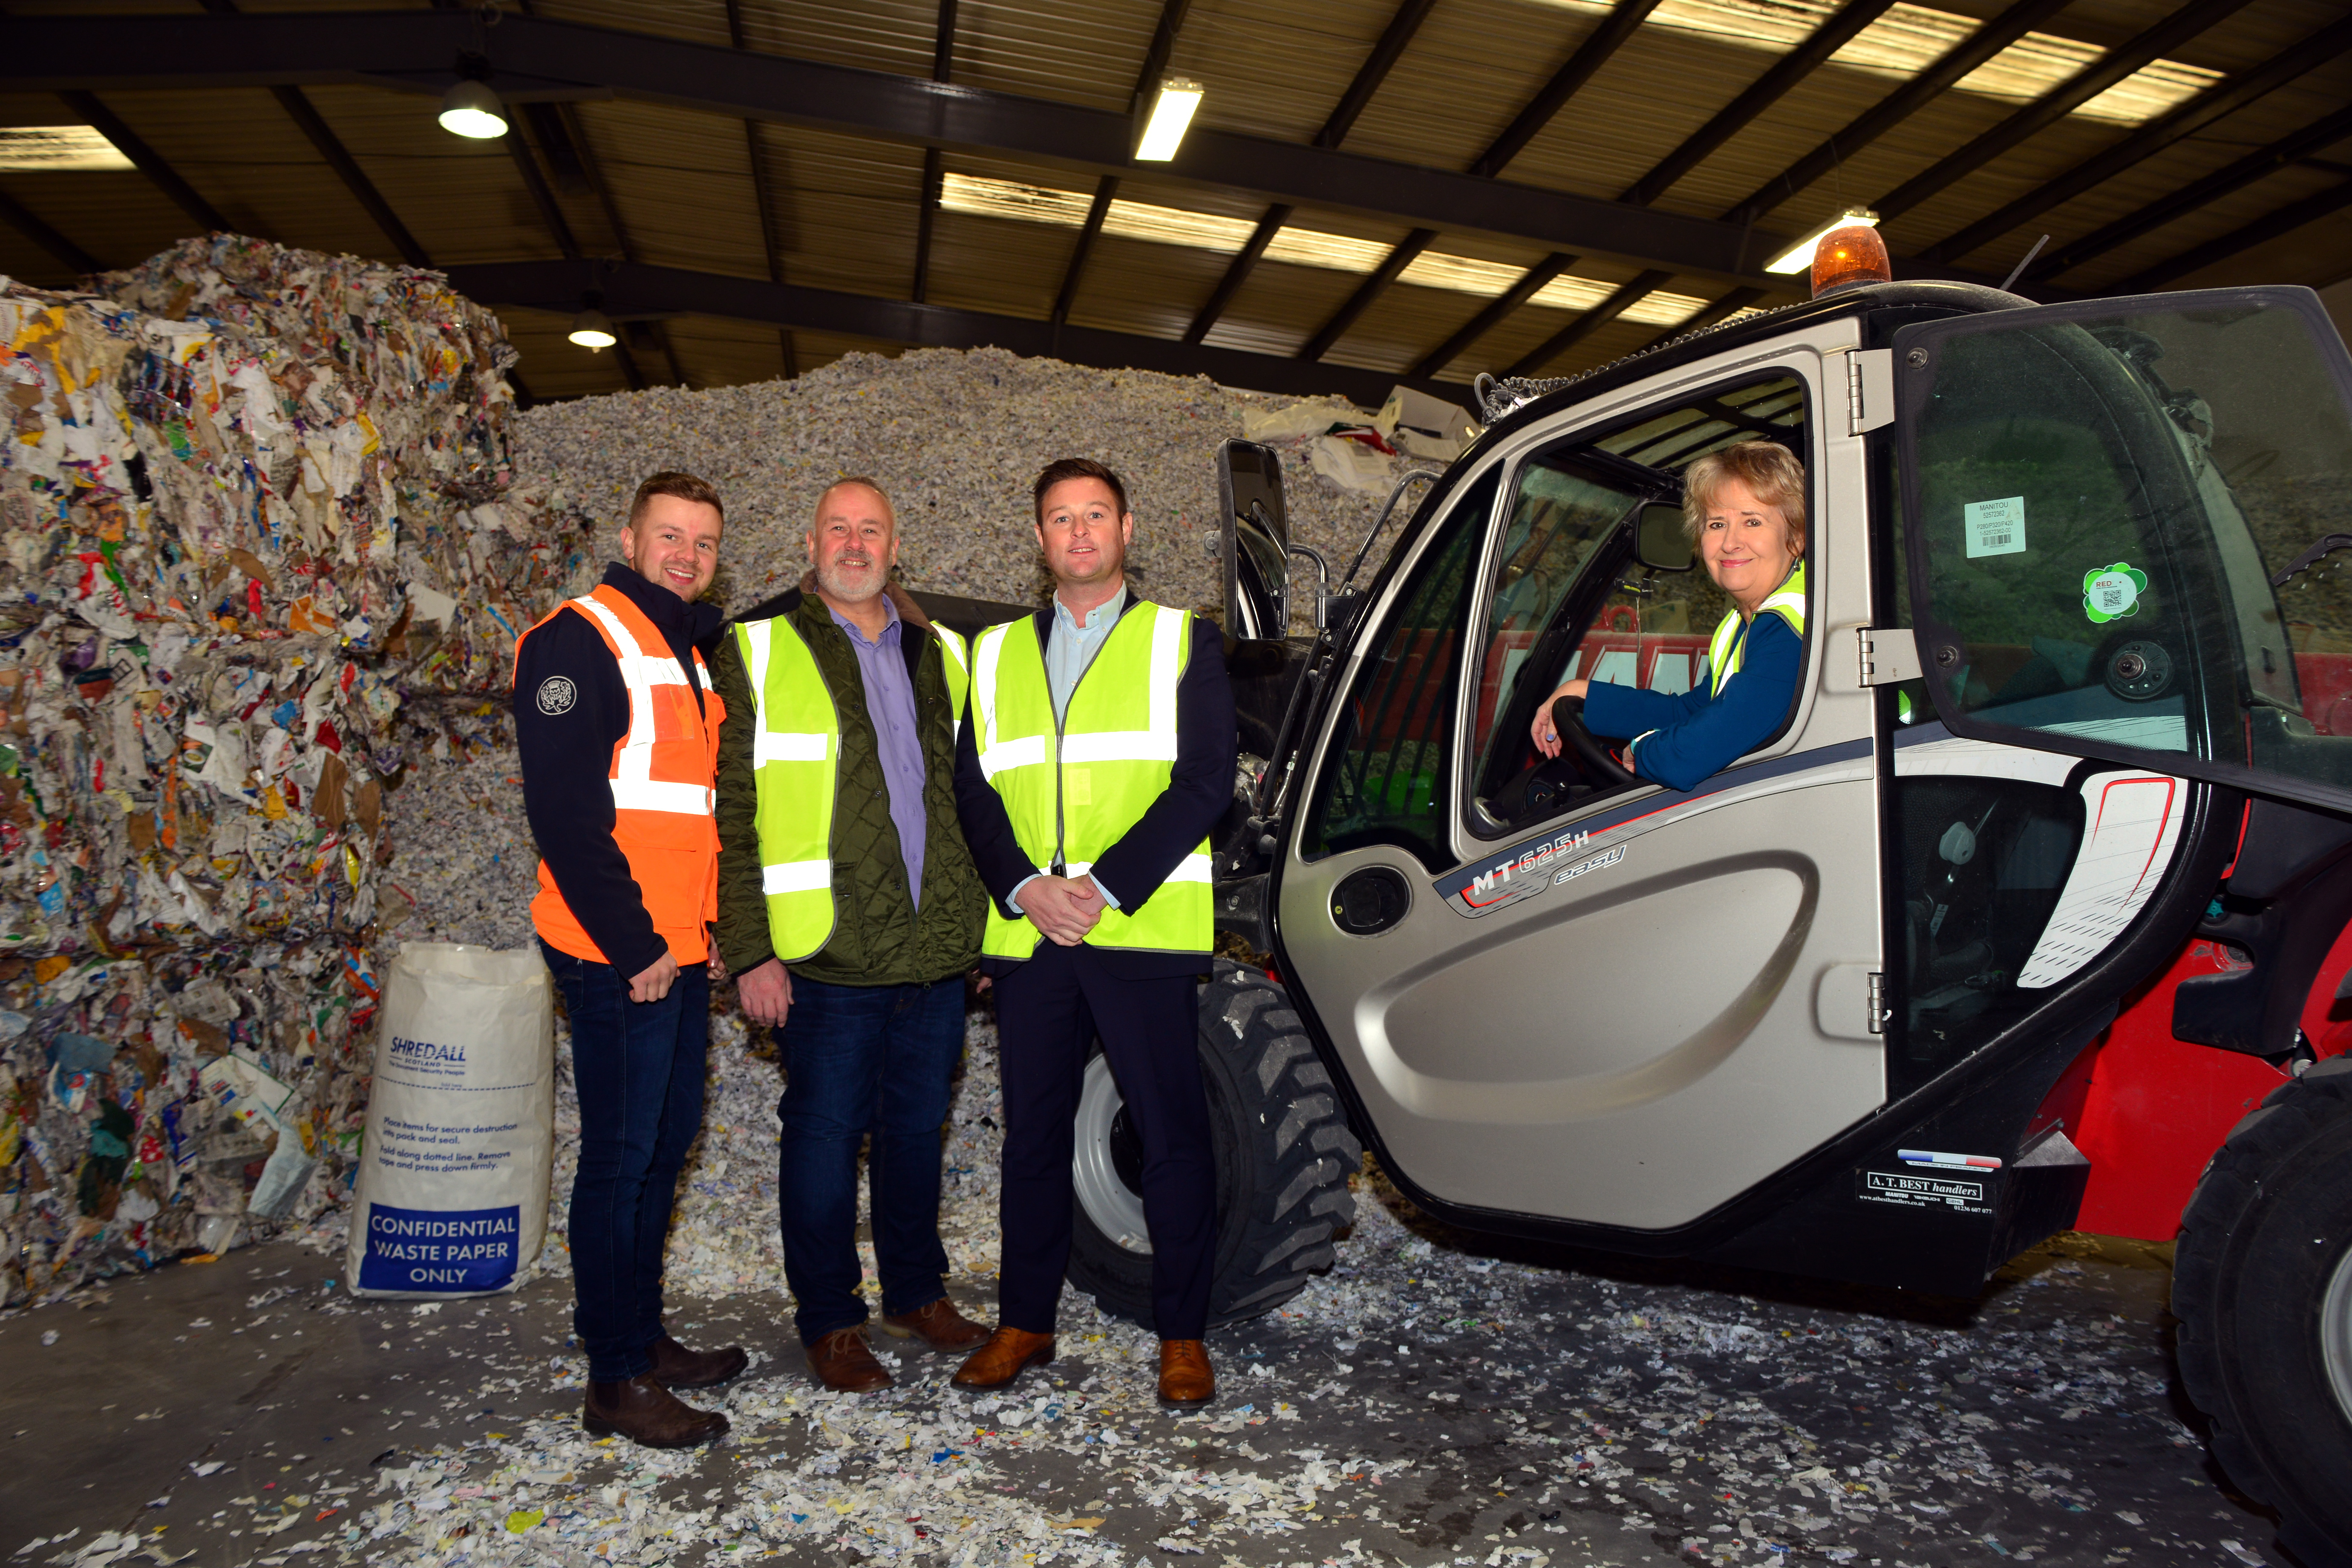 Environment Secretary Roseanna Cunningham visits new Scotland depot to promote circular economy